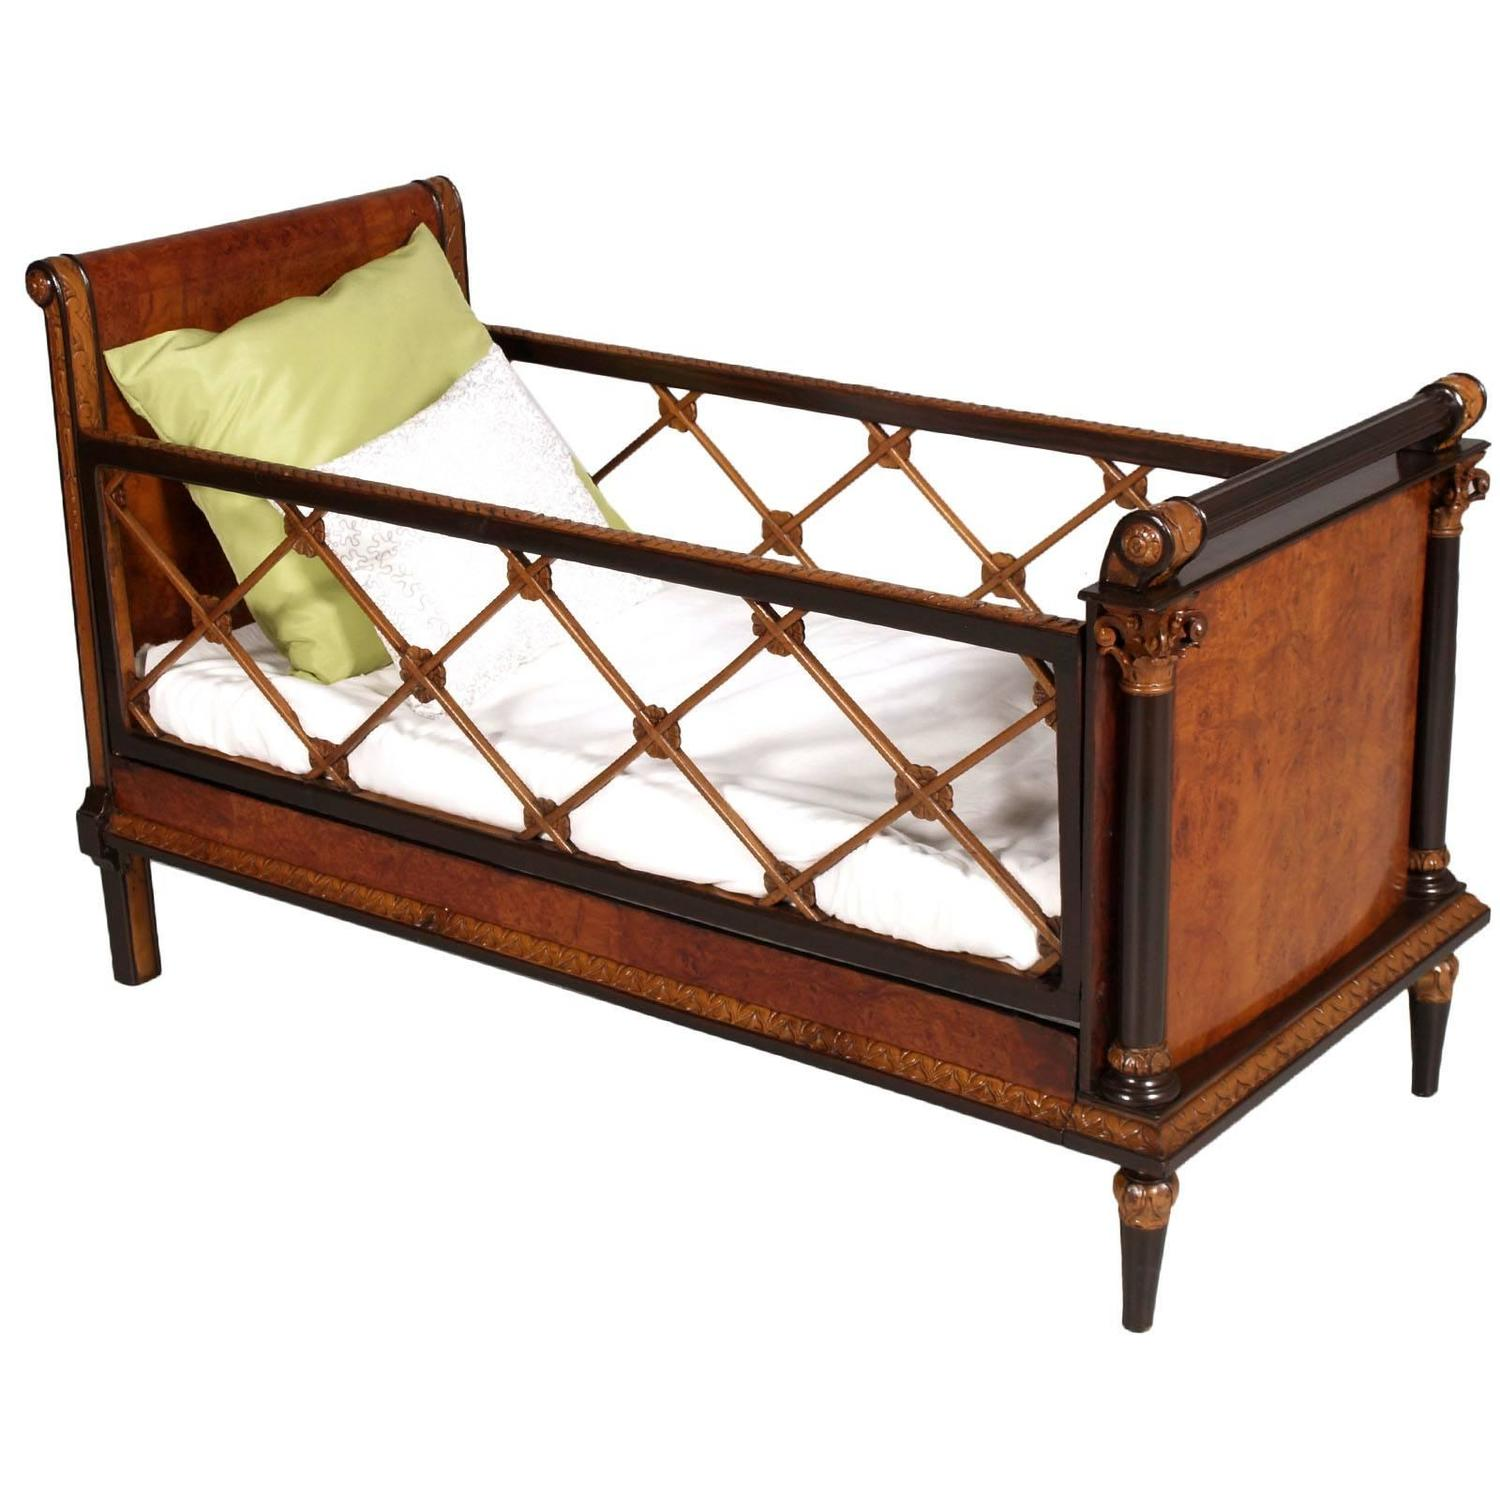 Baby bed pictures - Neoclassic Empire Baby Bed Barchetta In Burl Walnut Walnut And Carved Maple For Sale At 1stdibs